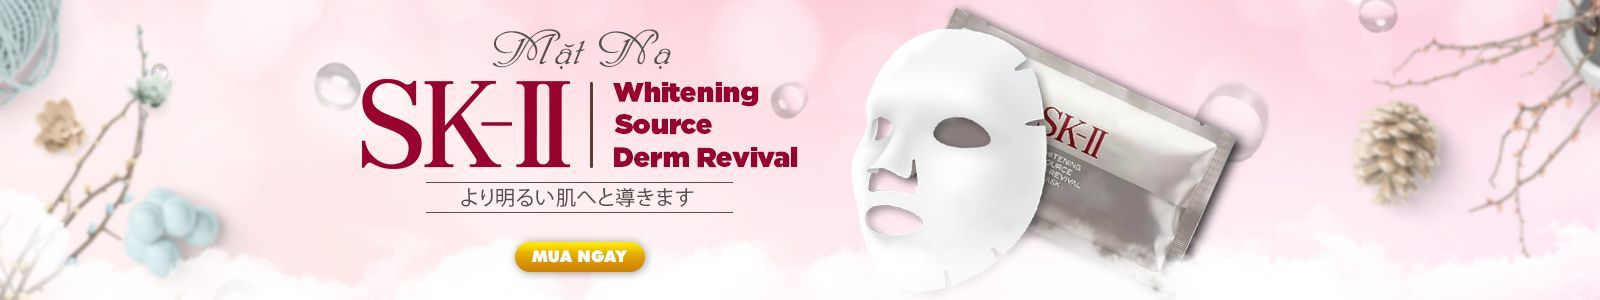 Mặt nạ trắng da SK-II Whitening Source Derm Revival 1 miếng